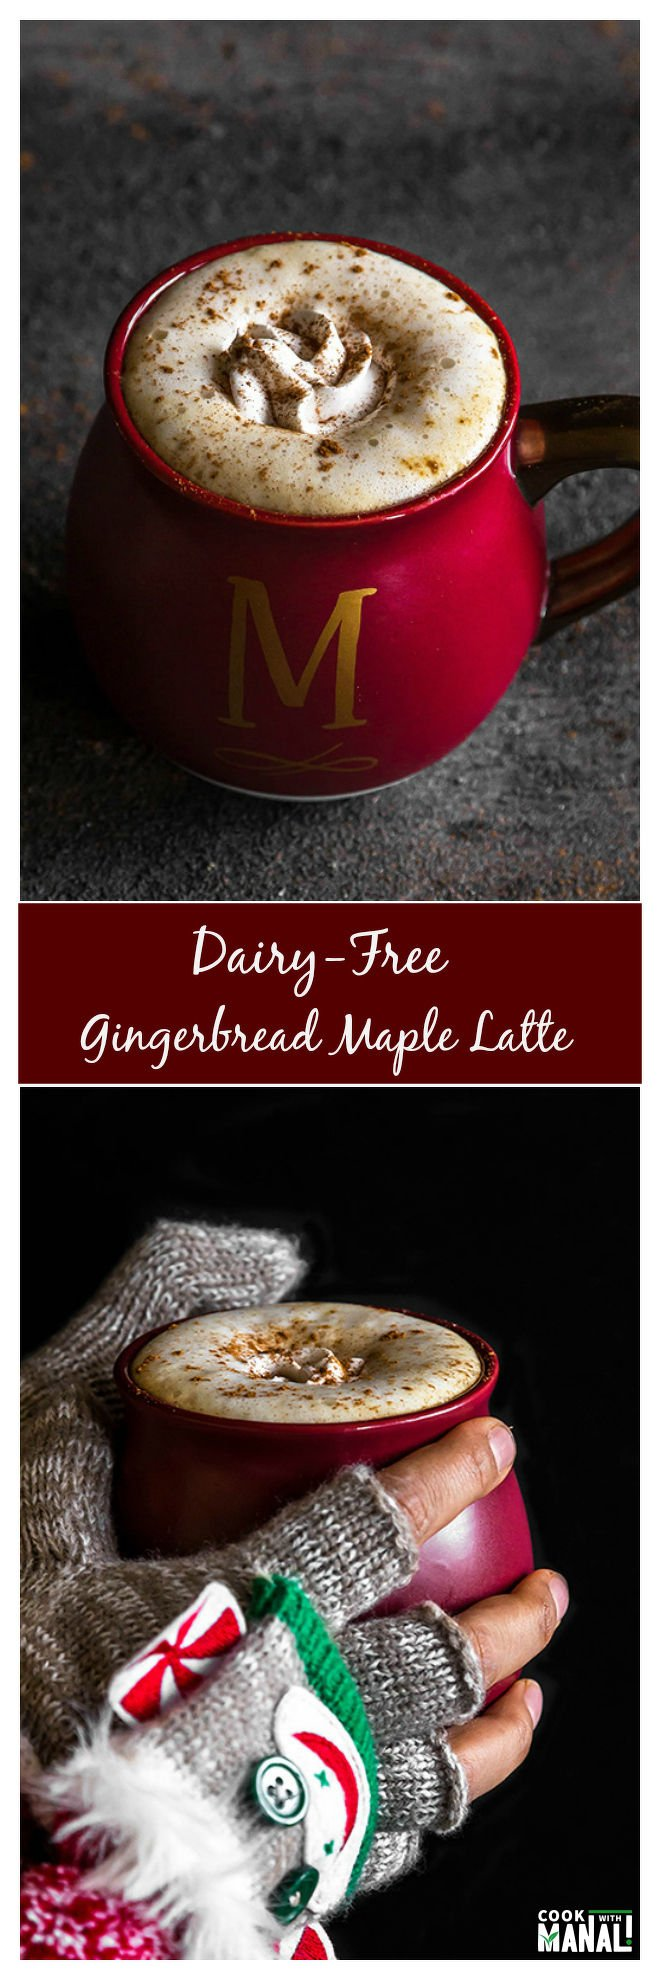 dairy-free-gingerbread-maple-latte-collage